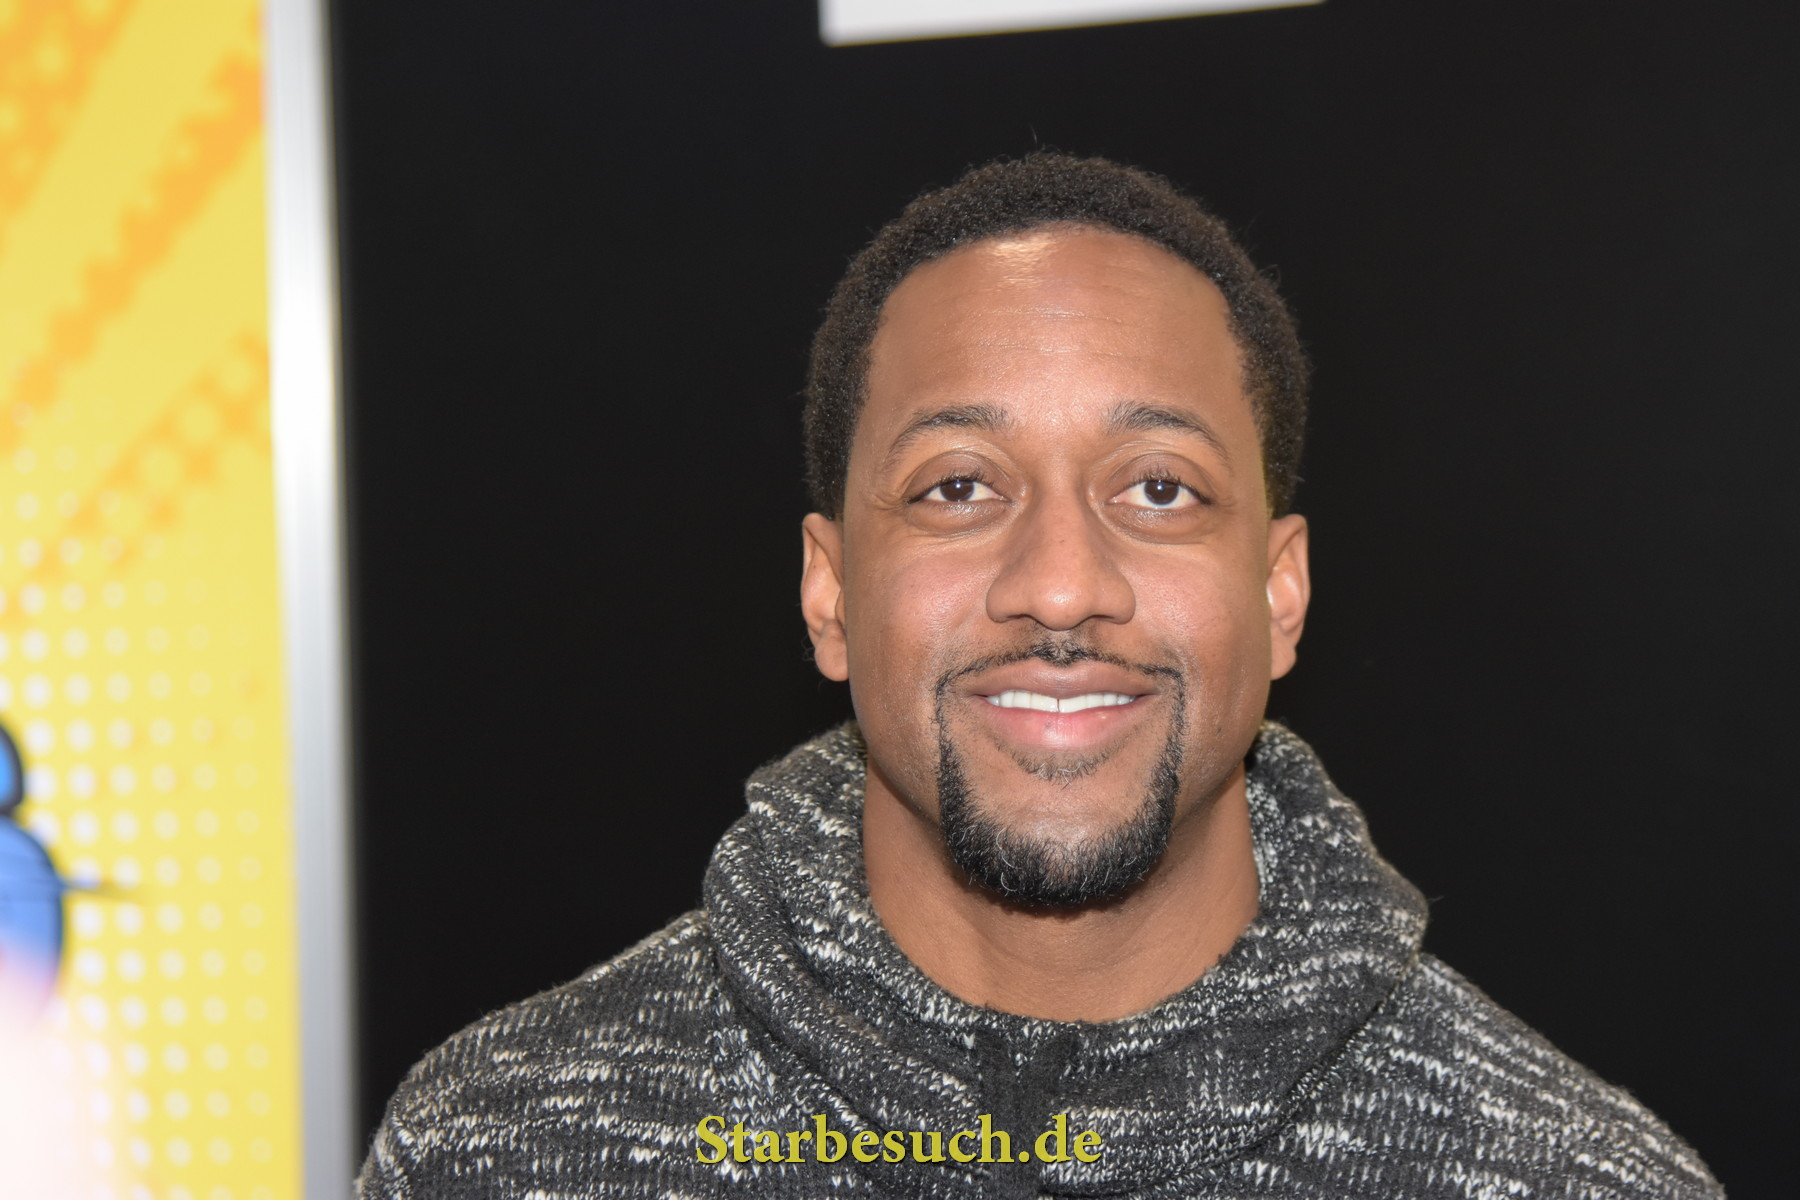 Dortmund, Germany - December 9th 2017: US Actor Jaleel White (* 1976, Steve Urkel on Family Matters, Dreamgirls, Boston Legal, House, Psych) at German Comic Con Dortmund.